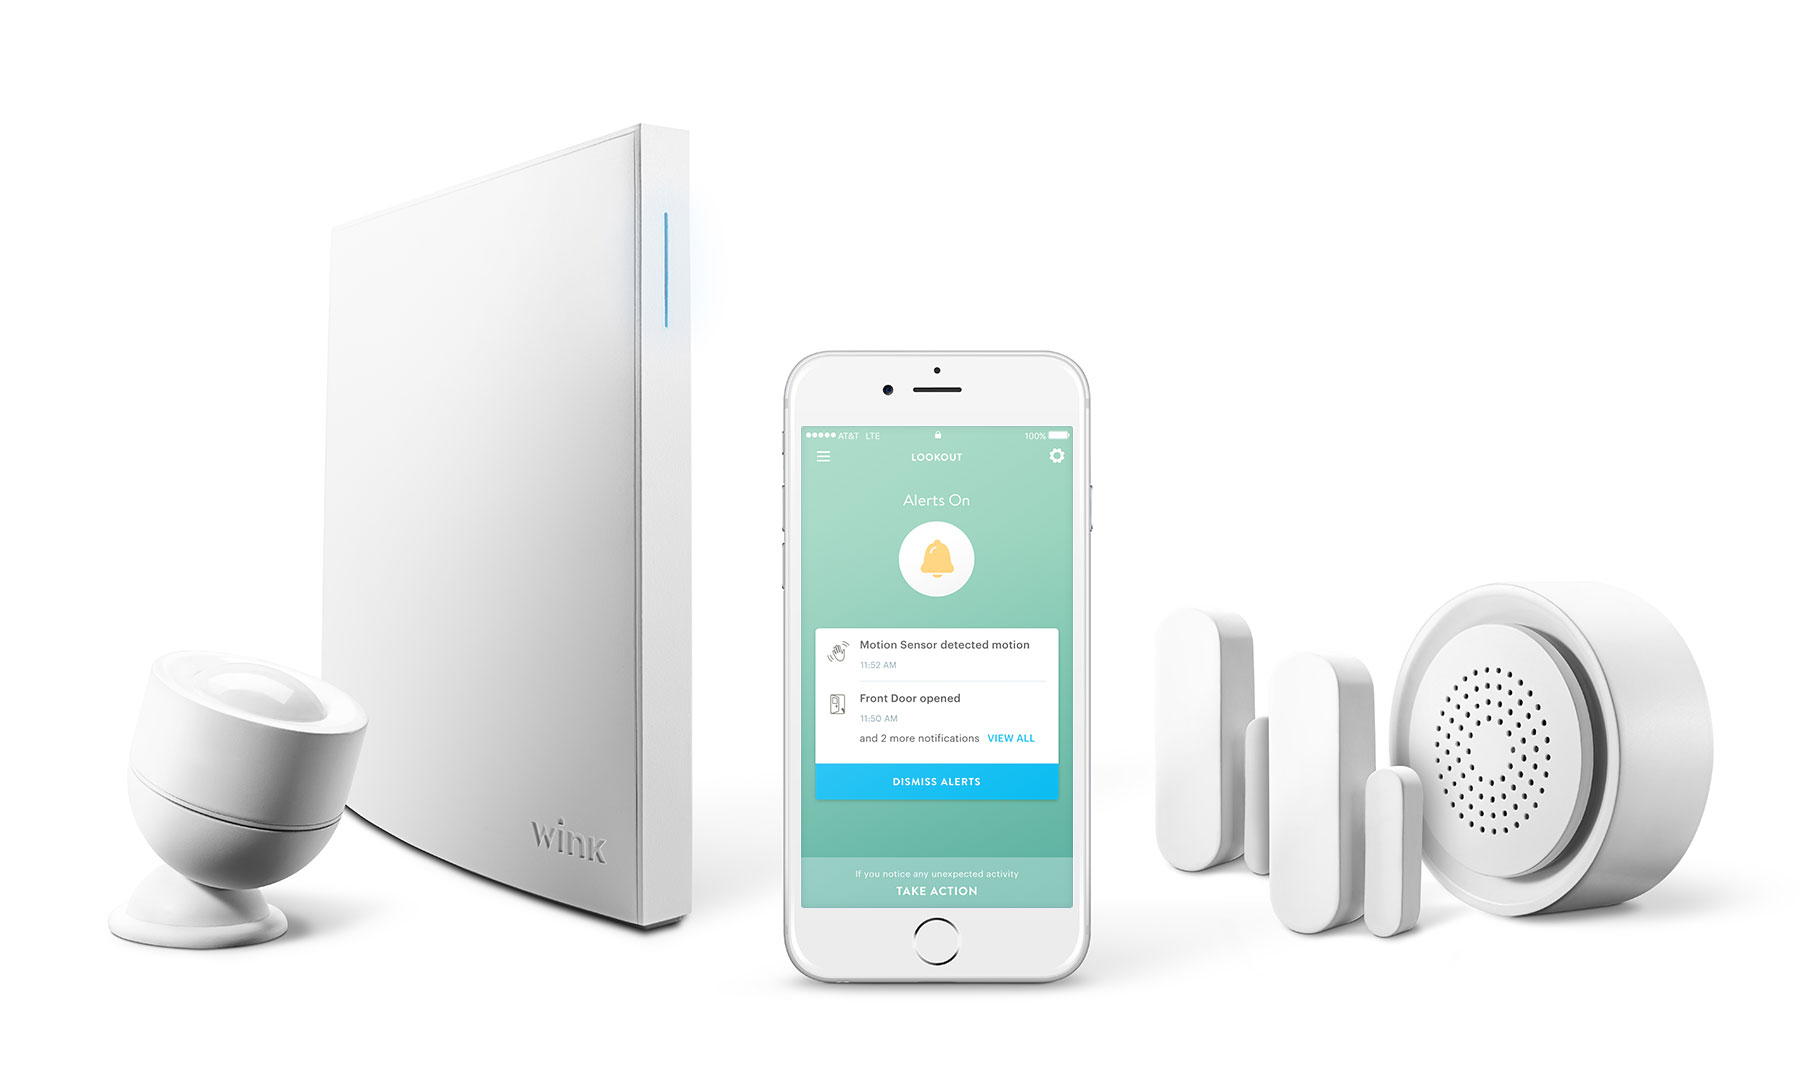 Product Smart Wink Buy And View Smart Home Products